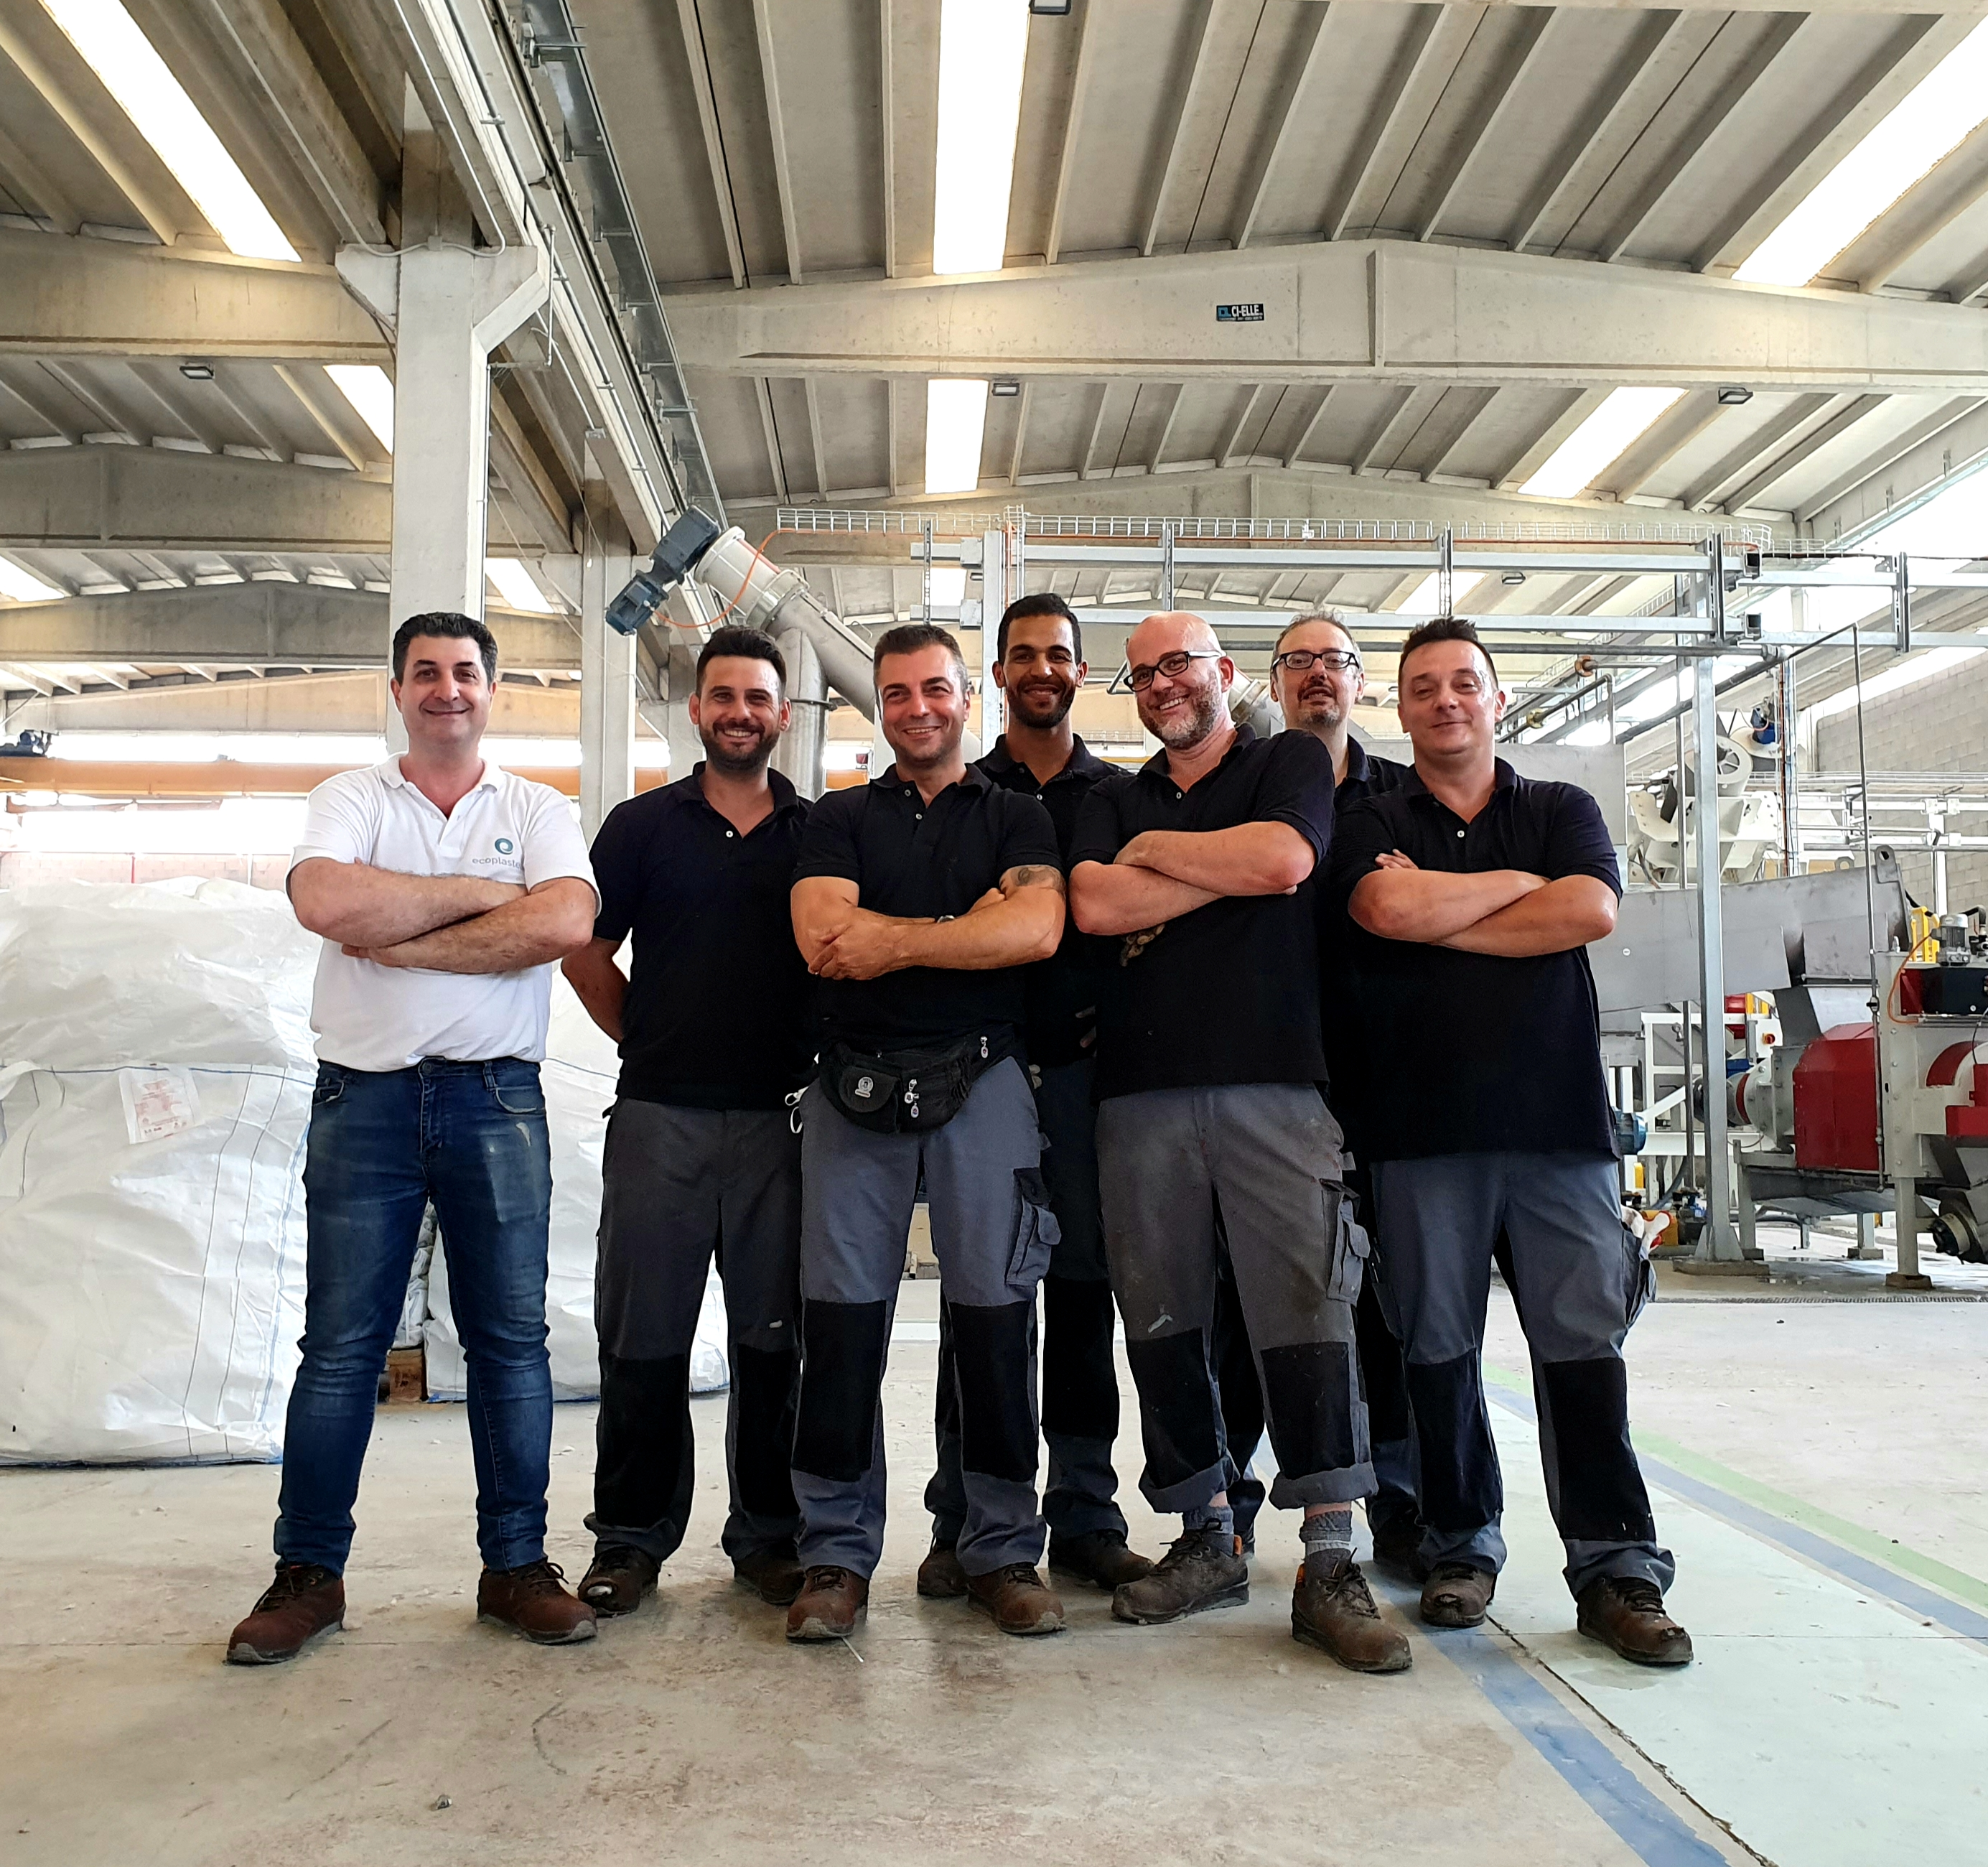 The Spinetta Marengo Production Staff!